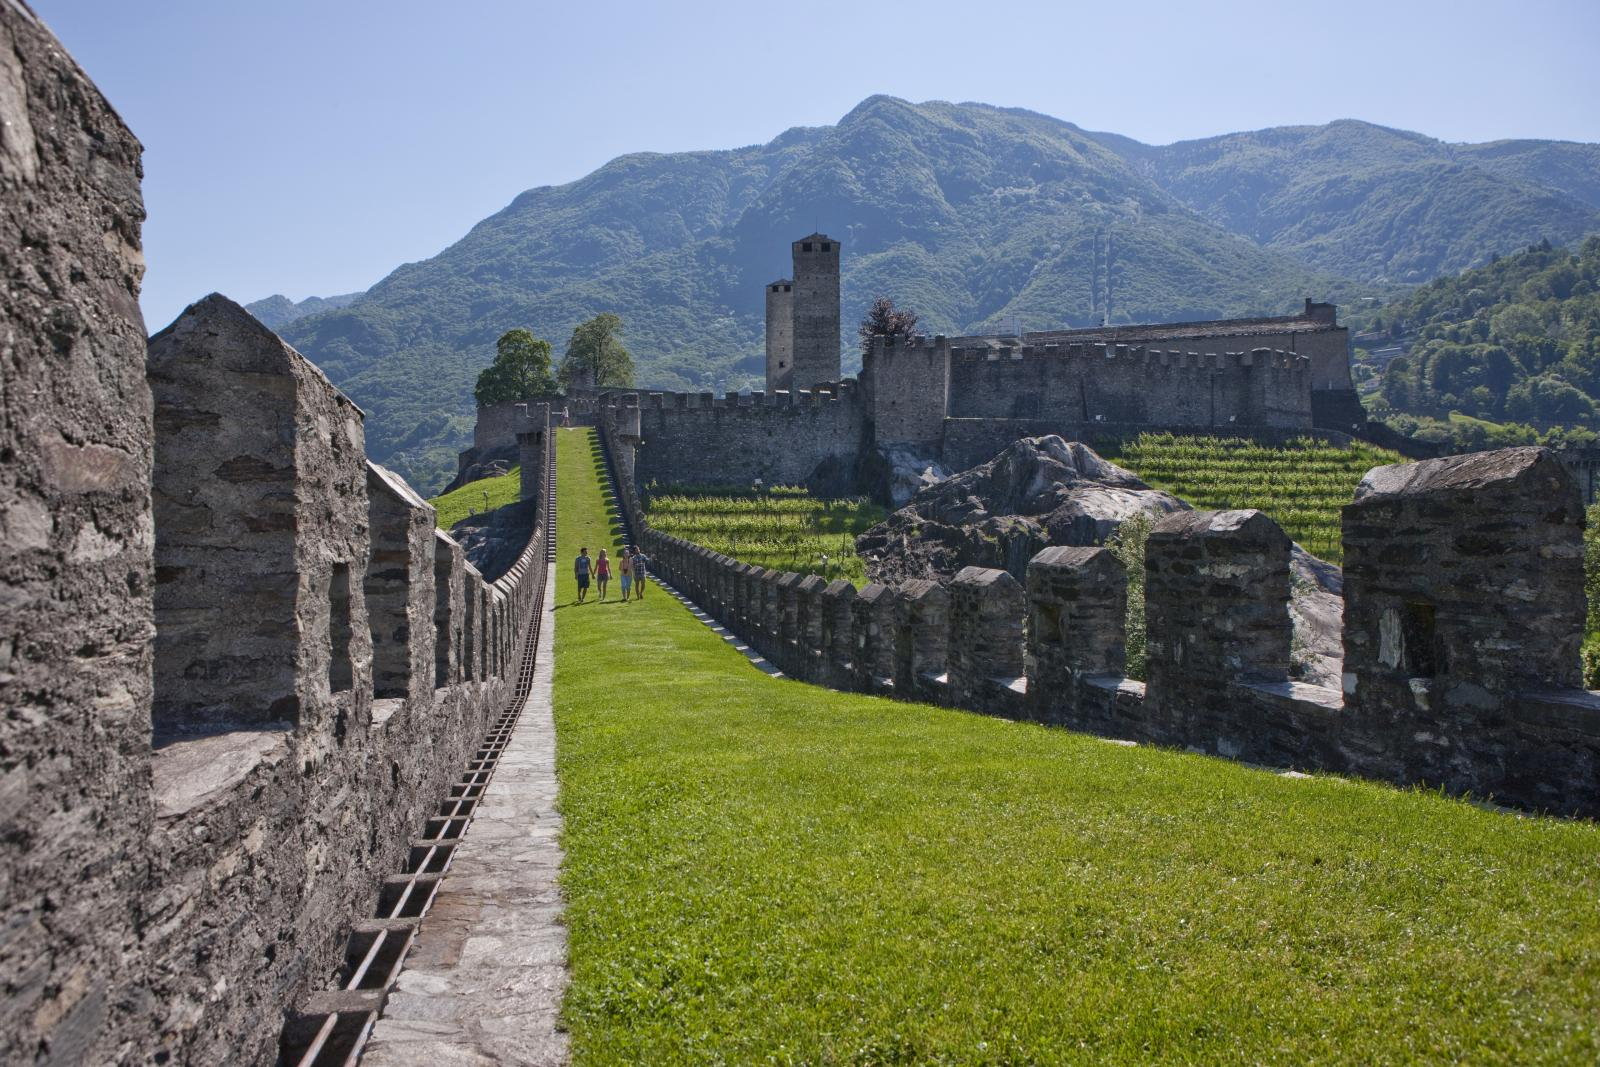 Castlegrande in Bellinzona